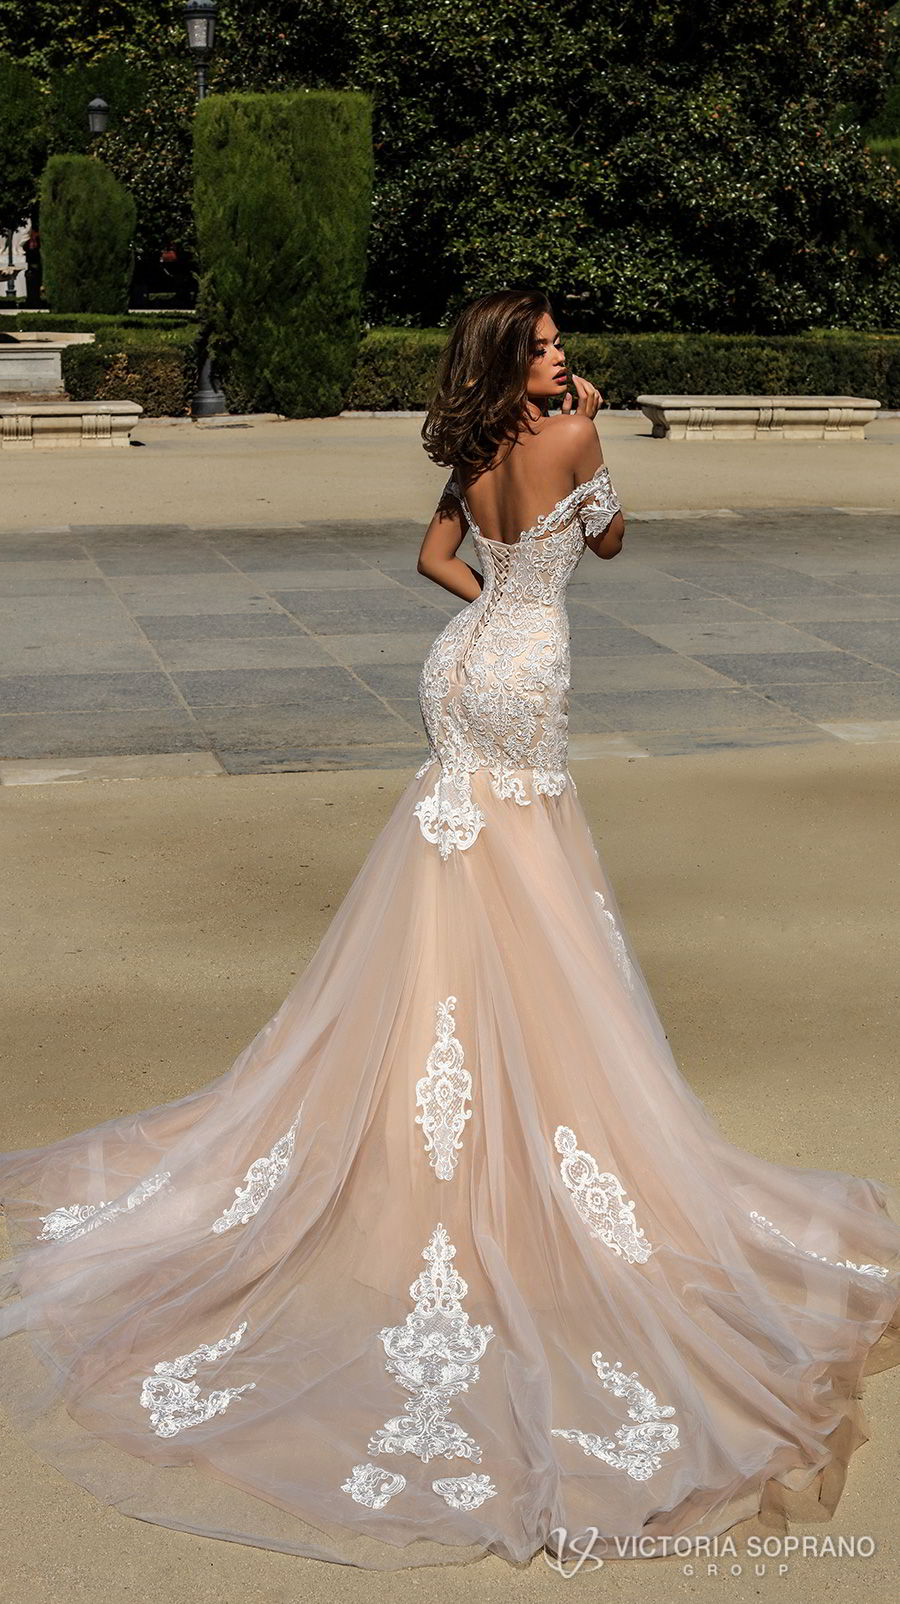 victoria soprano 2018 bridal short sleeves illusion bateau semi sweetheart neckline heavily embellished bodice elegant blush color mermaid wedding dress open back chapel train (brenda) bv